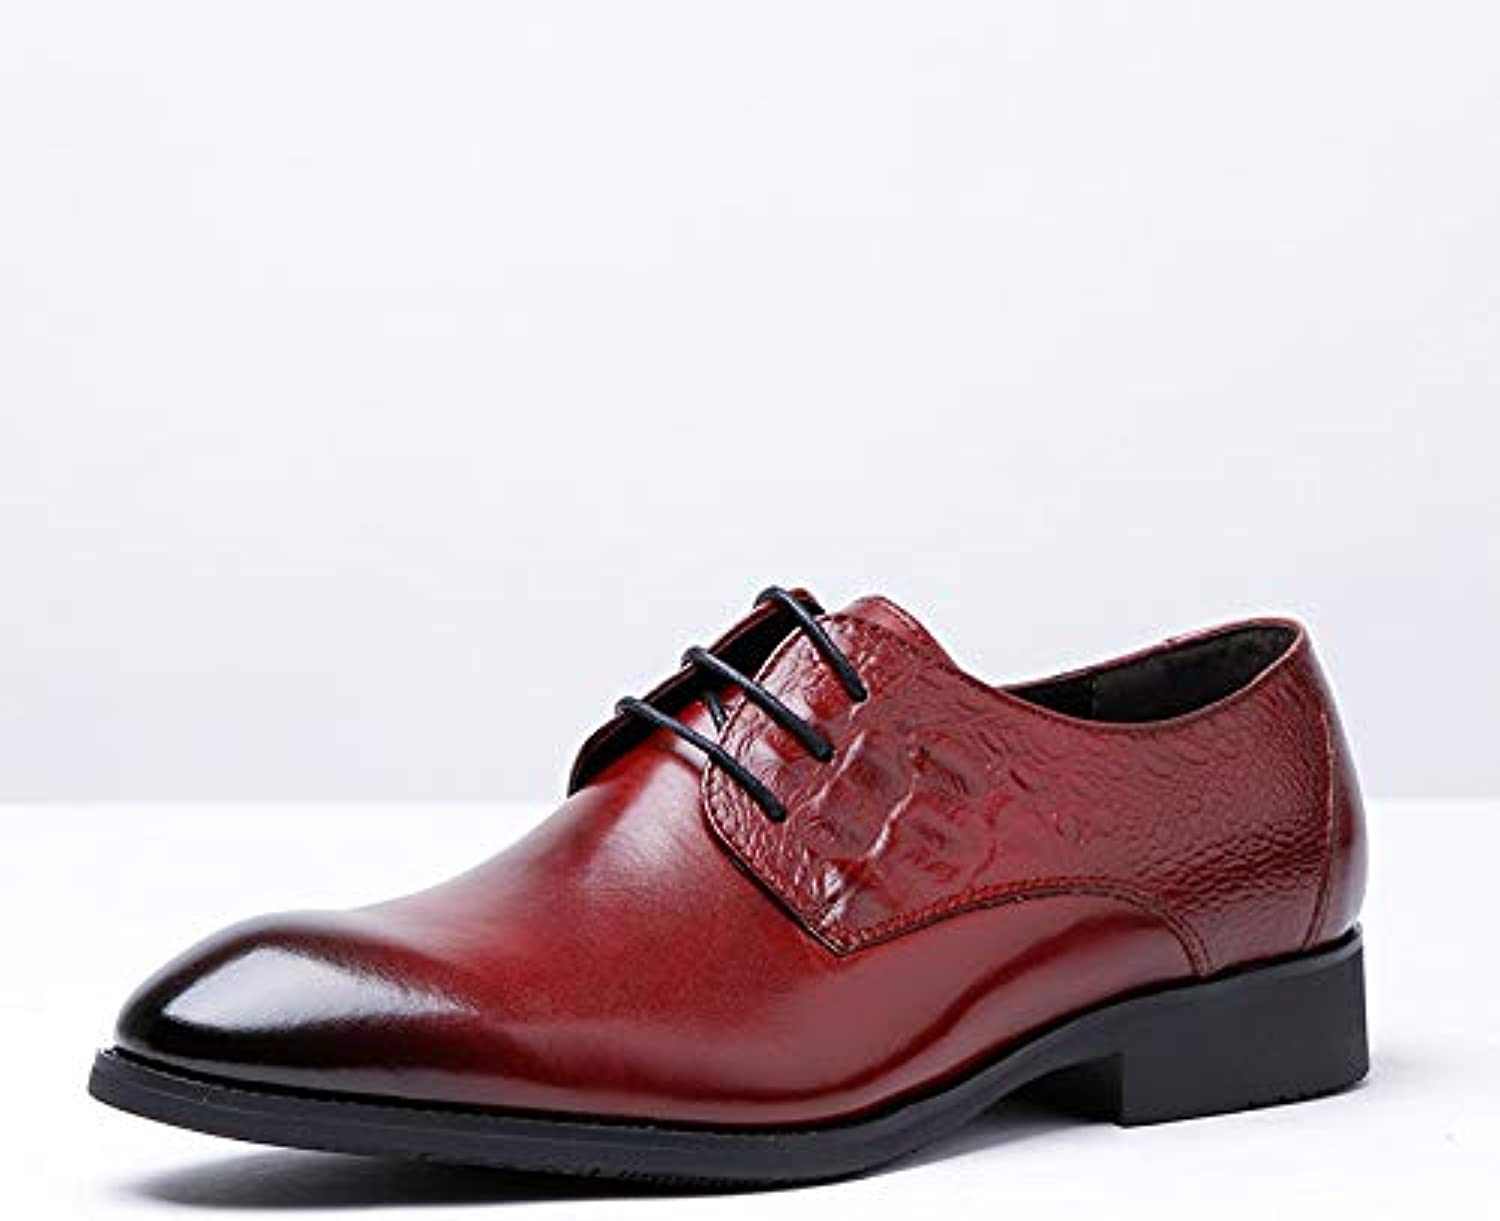 Ruiyue Leather Oxford shoes, Casual Lace-up shoes High-end Men's shoes With Pattern Decoration (color   Red, Size   39-EU)